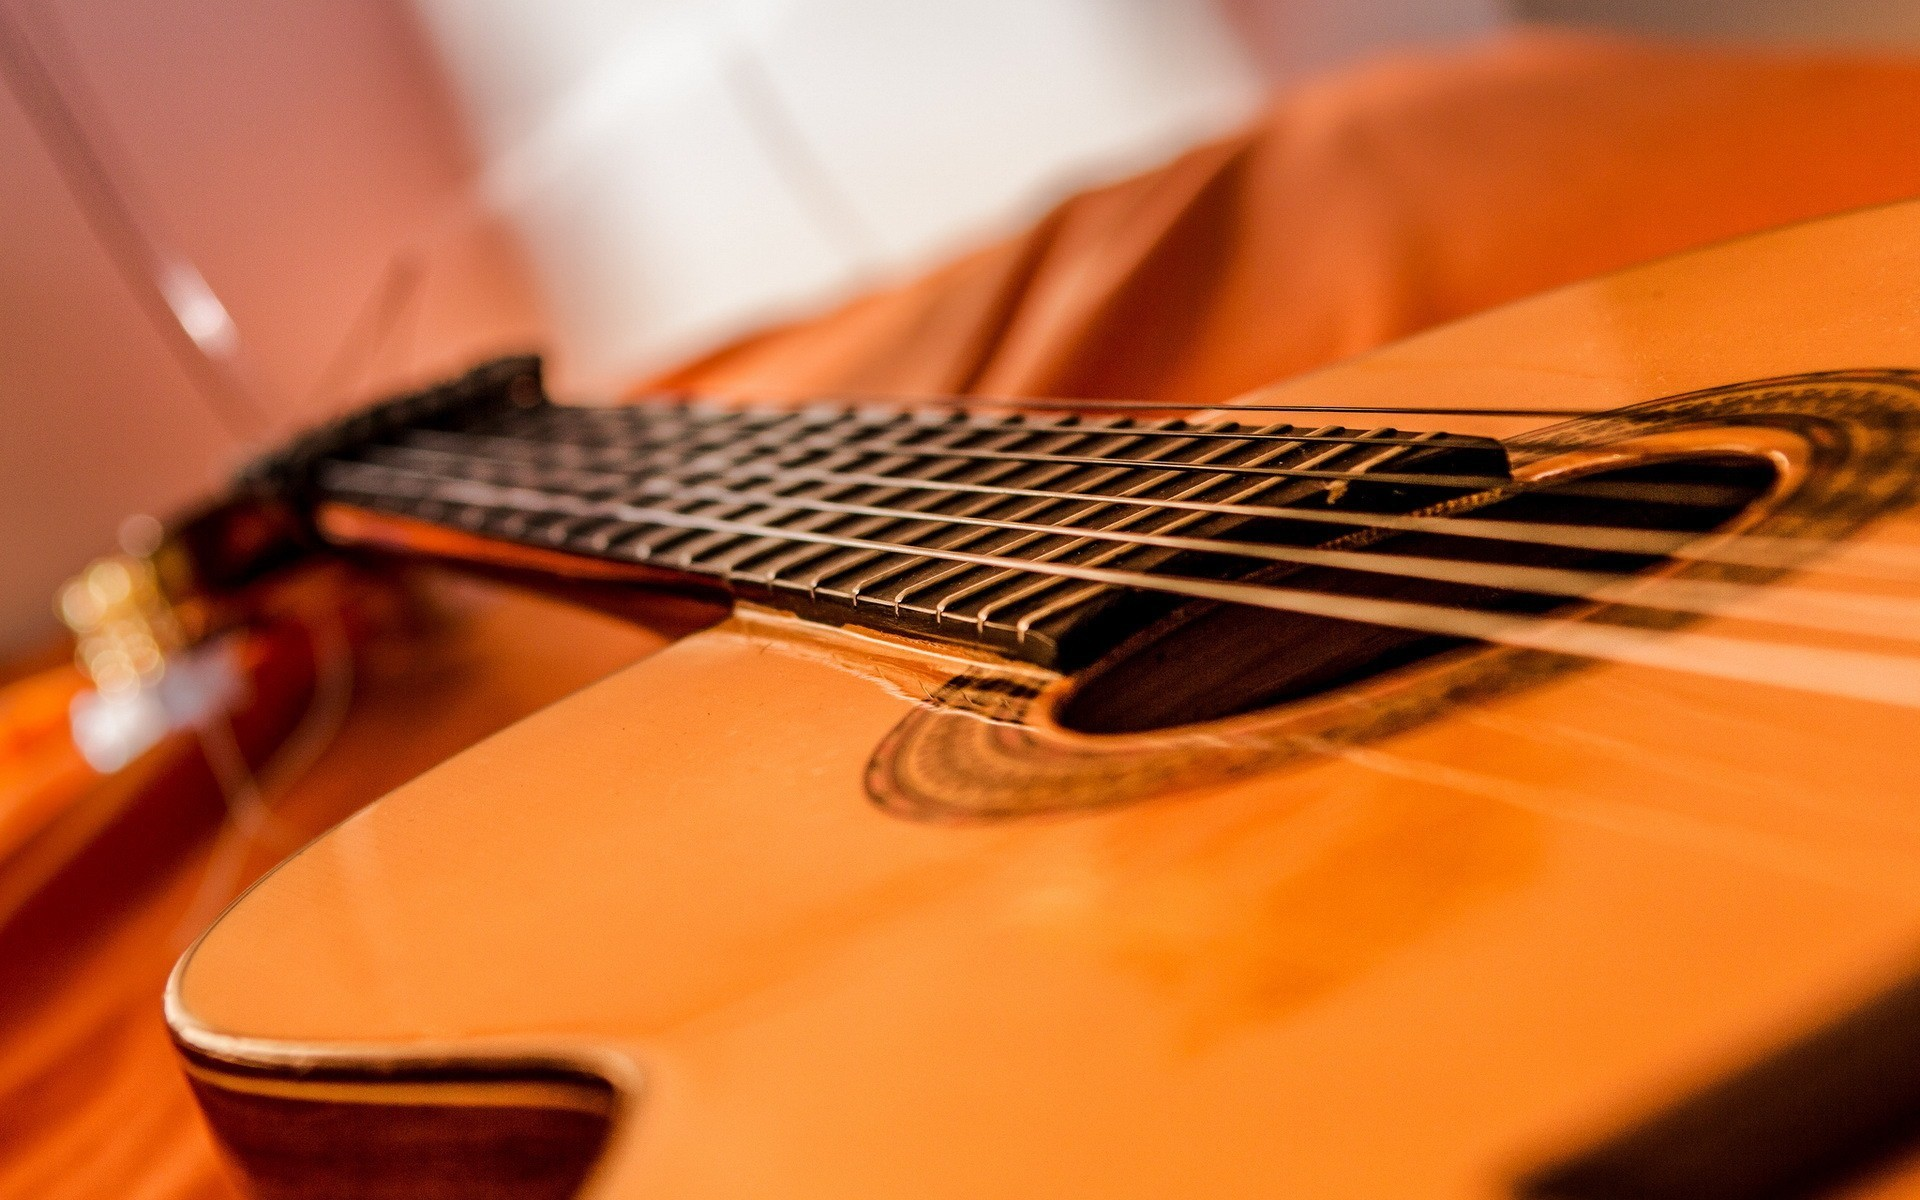 Awesome guitar wallpapers 57 images - Free guitar wallpapers for pc ...